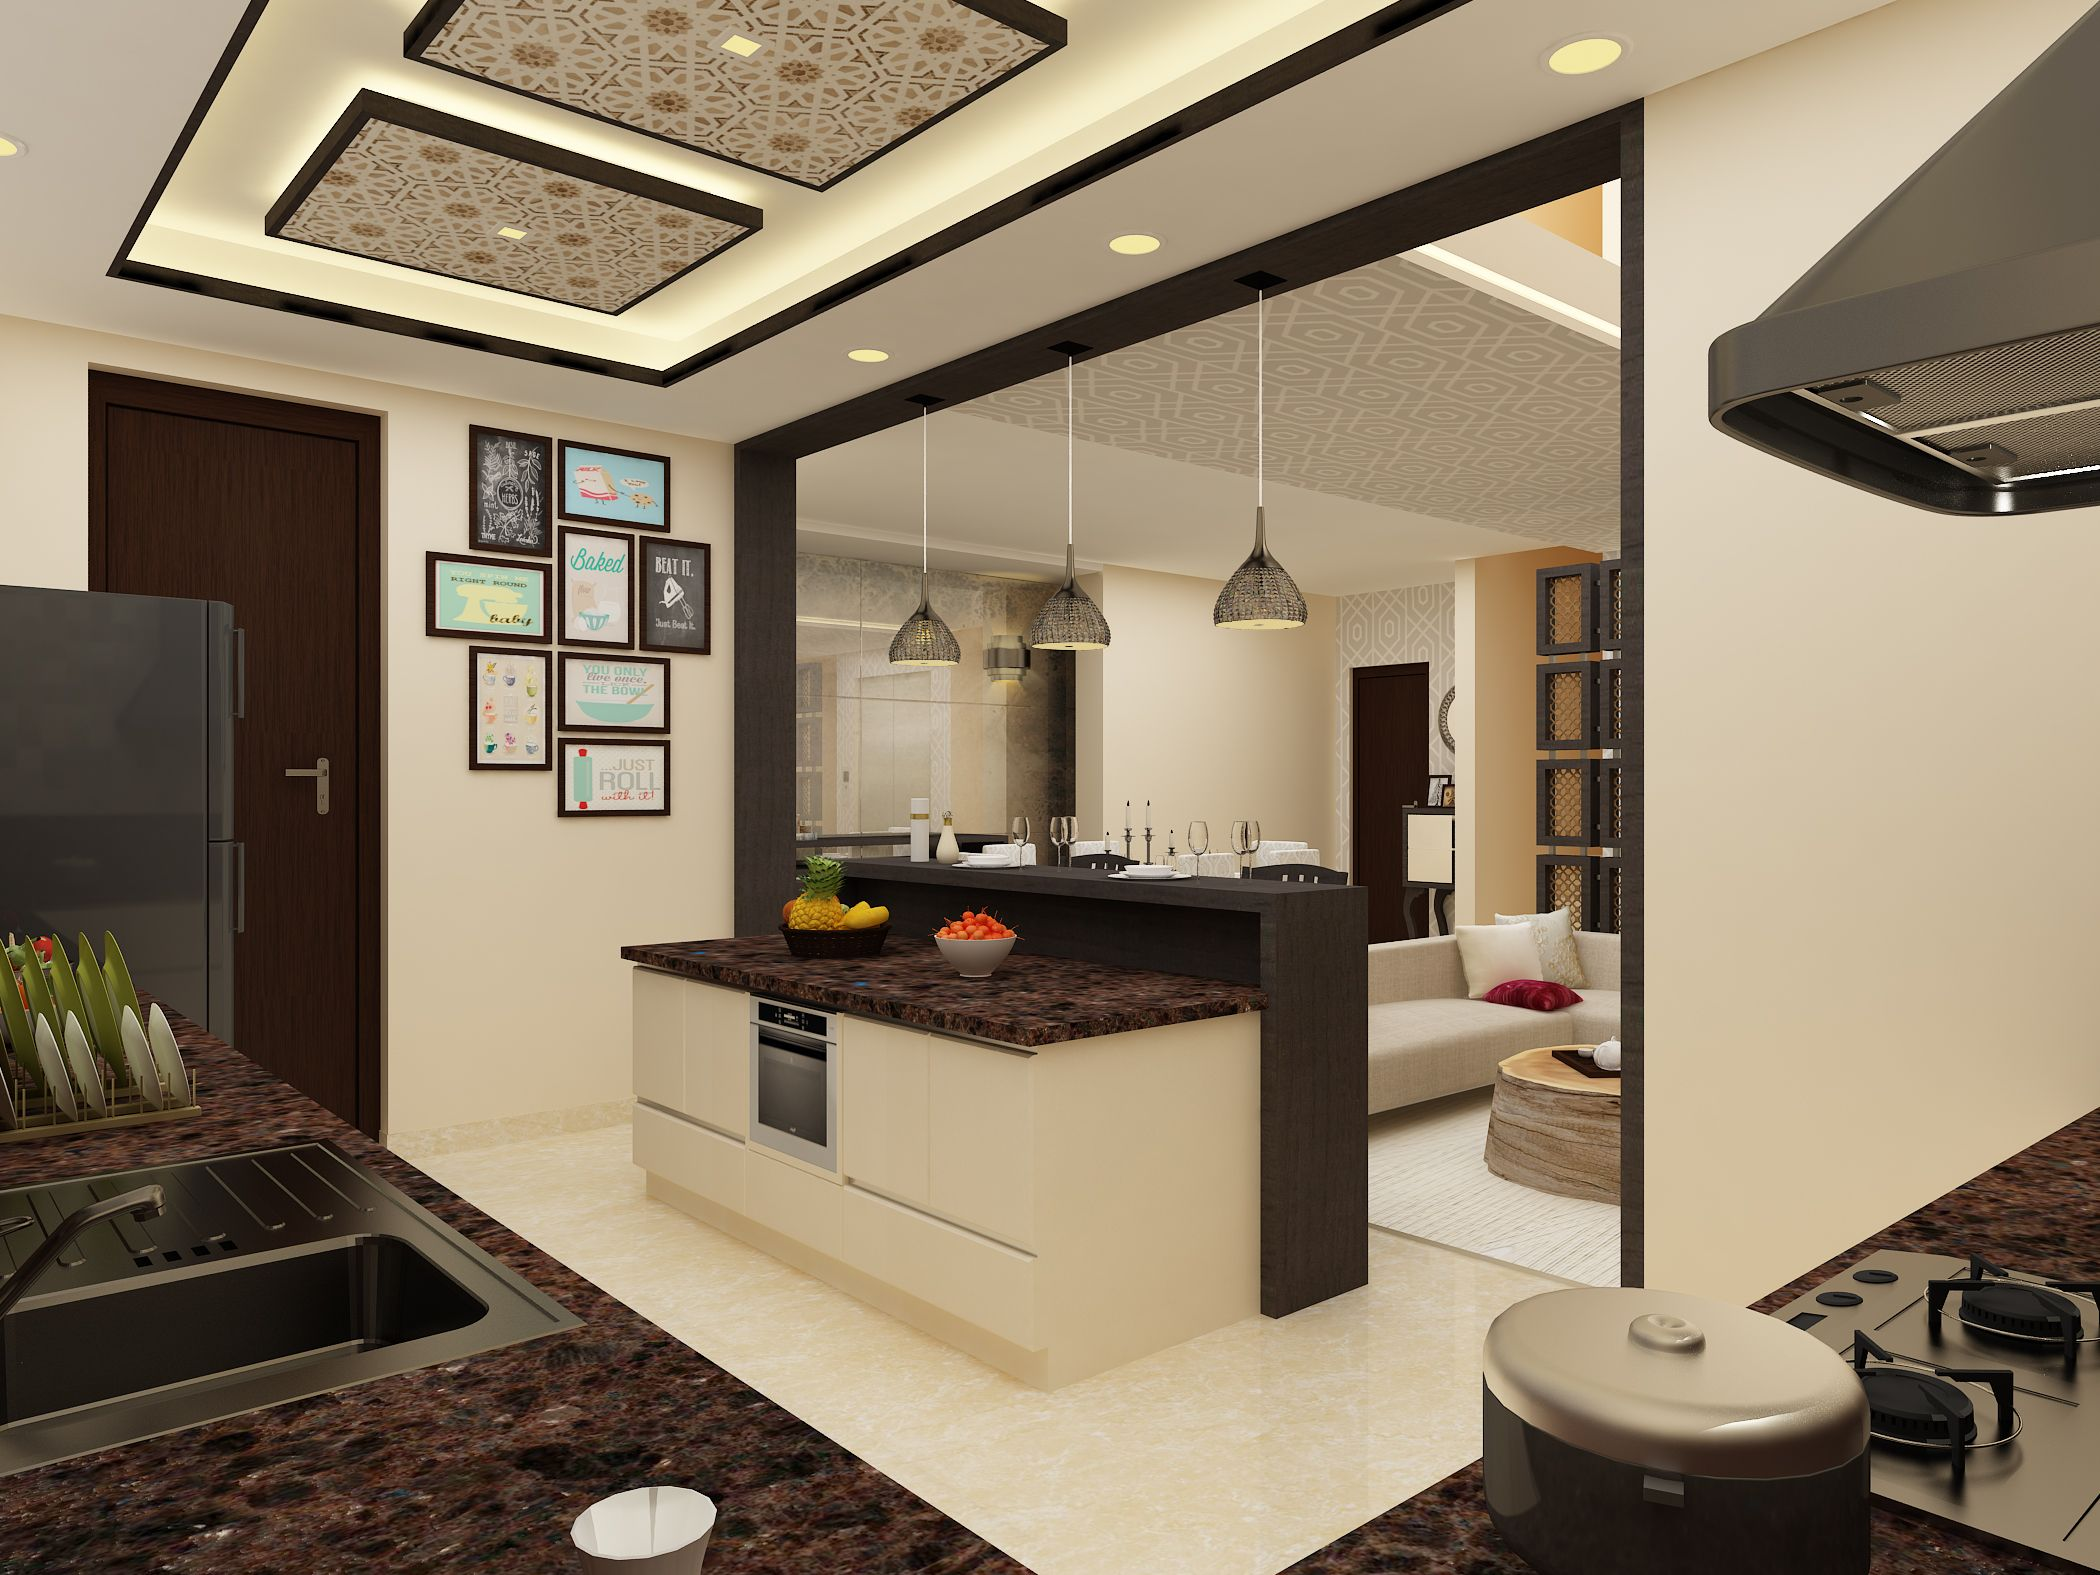 Kuvio Studio Is One Of The Leading Interior Design Firm In Bangalore. Our  Designers And Decorators Offer Creative Residential, Commercial And Office  ...